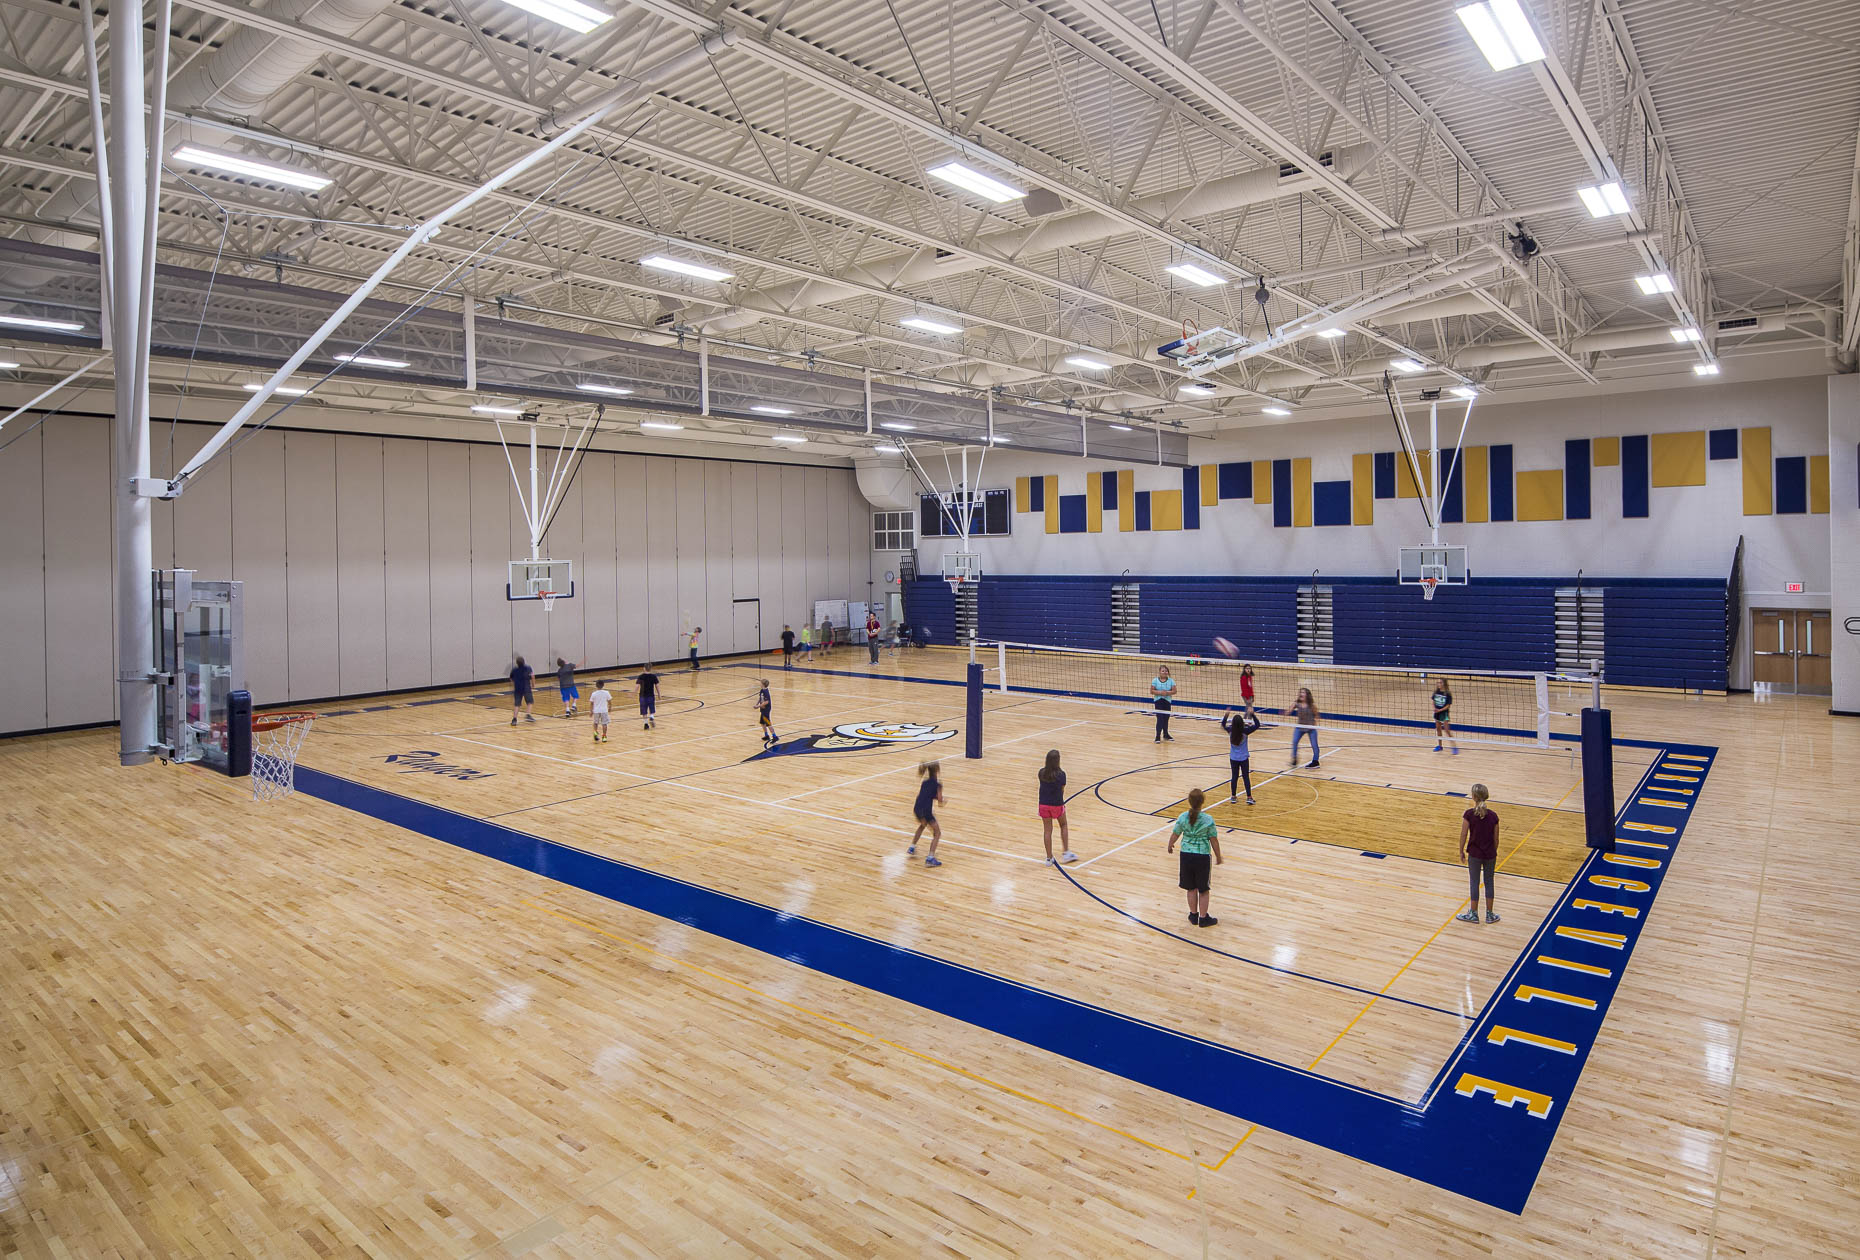 North Ridgeville Academic Center by TDA photographed by Lauren K Davis based in Columbus, Ohio